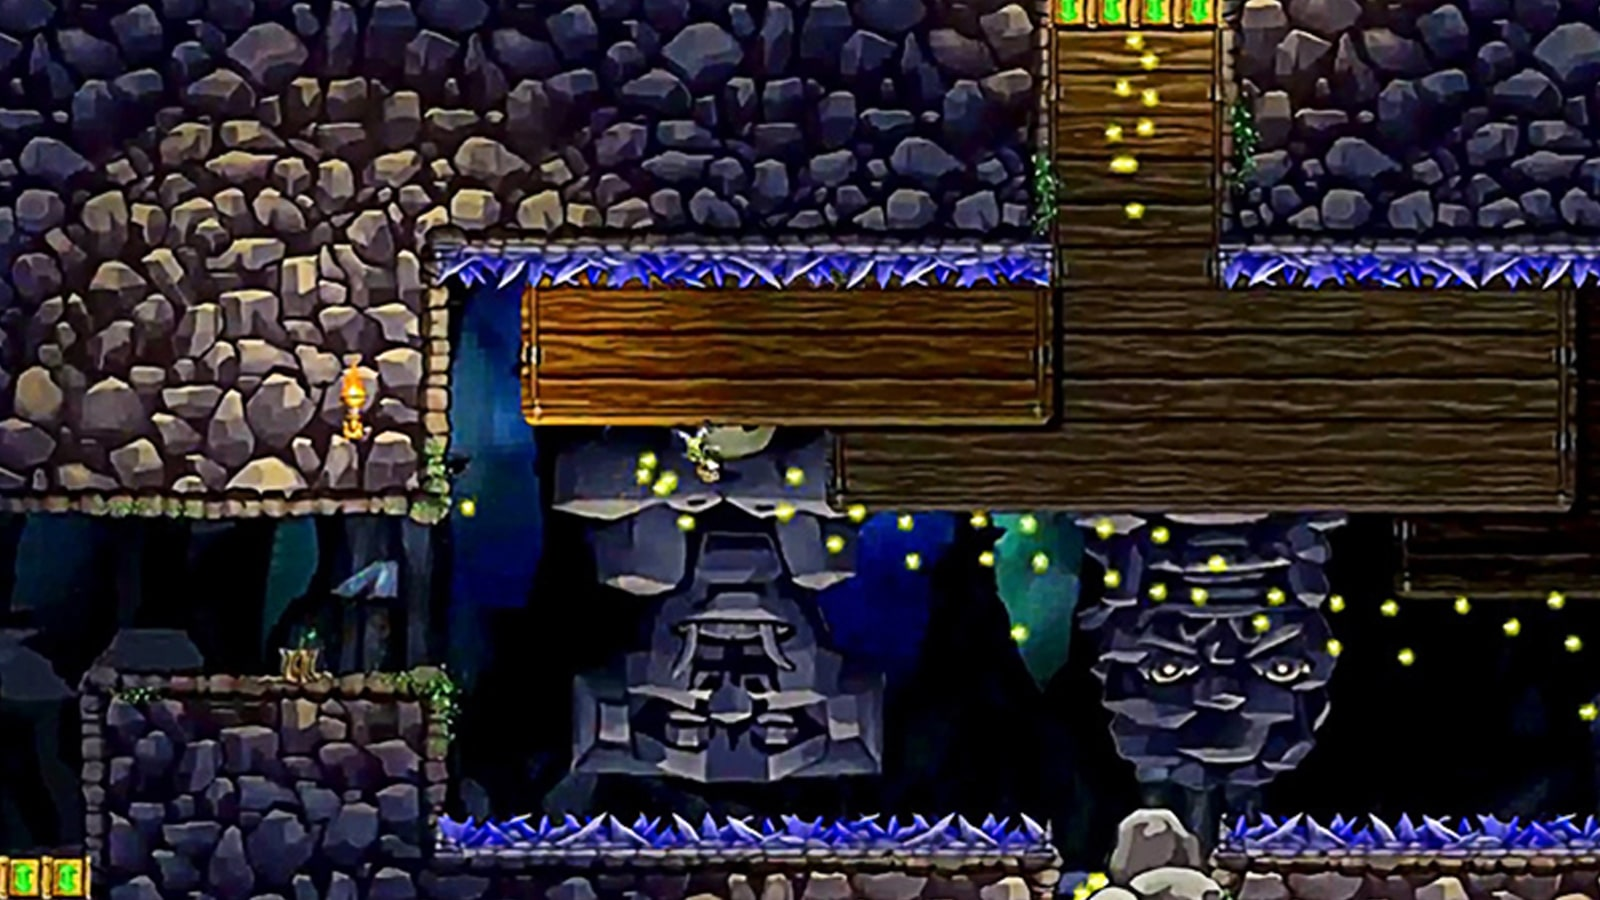 A boy walks inverted on a wooden platform on the ceiling of a large underground cavern covered in spiky purple crystals.